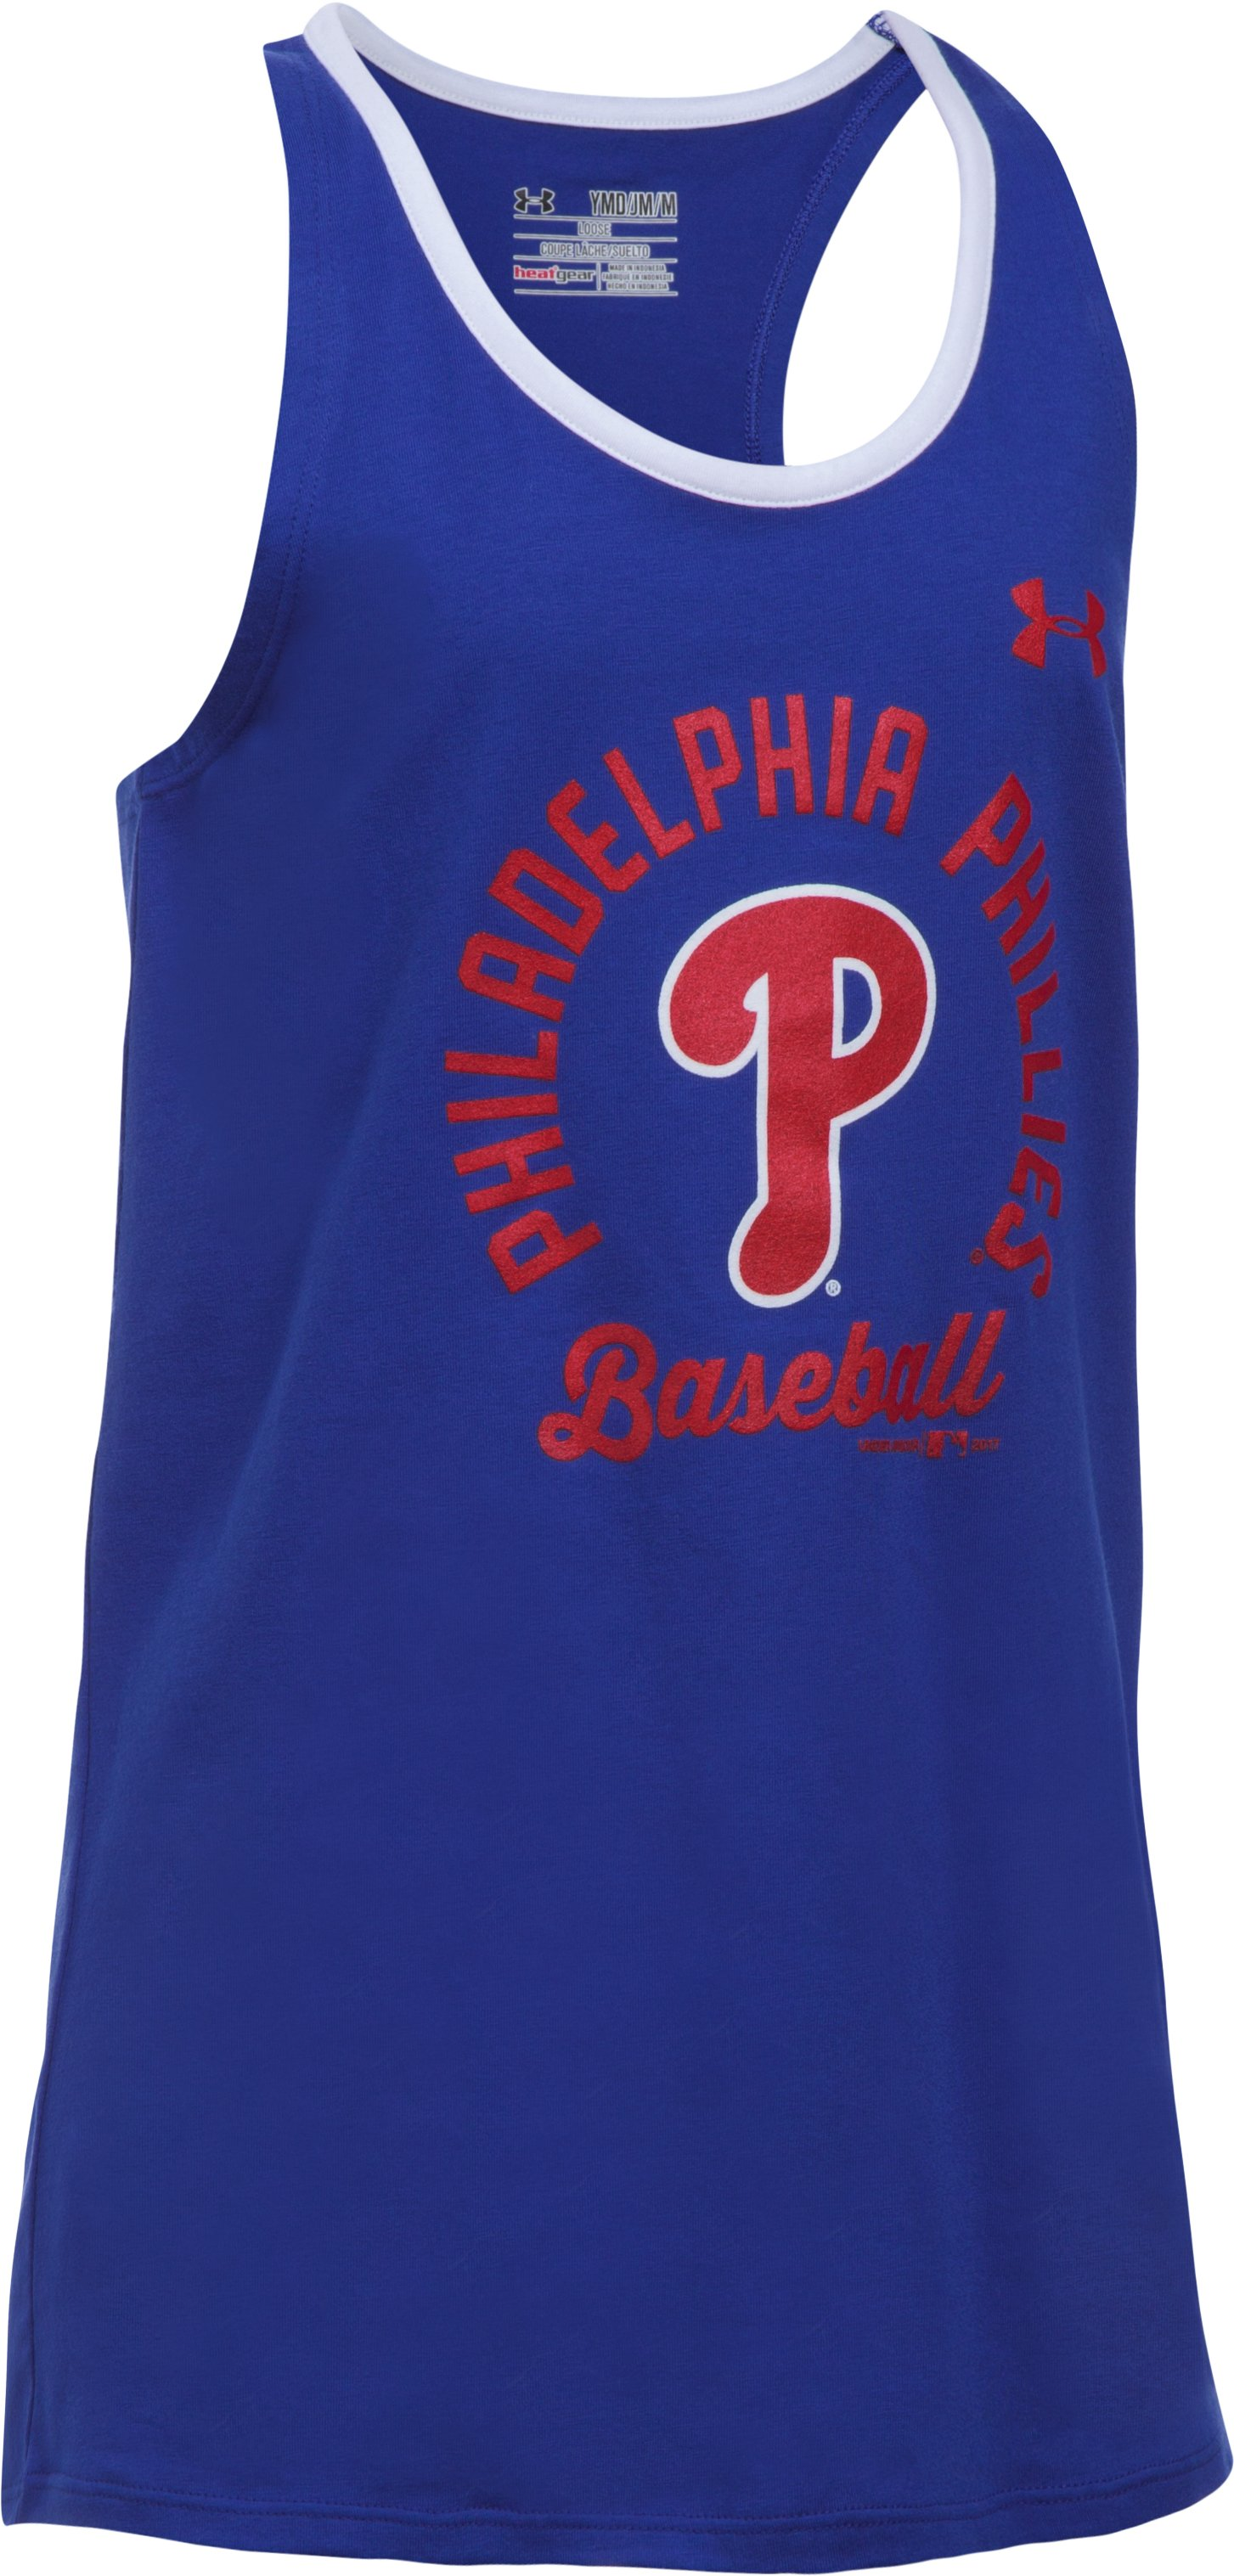 Girls' Philadelphia Phillies Ringer Tank, Royal